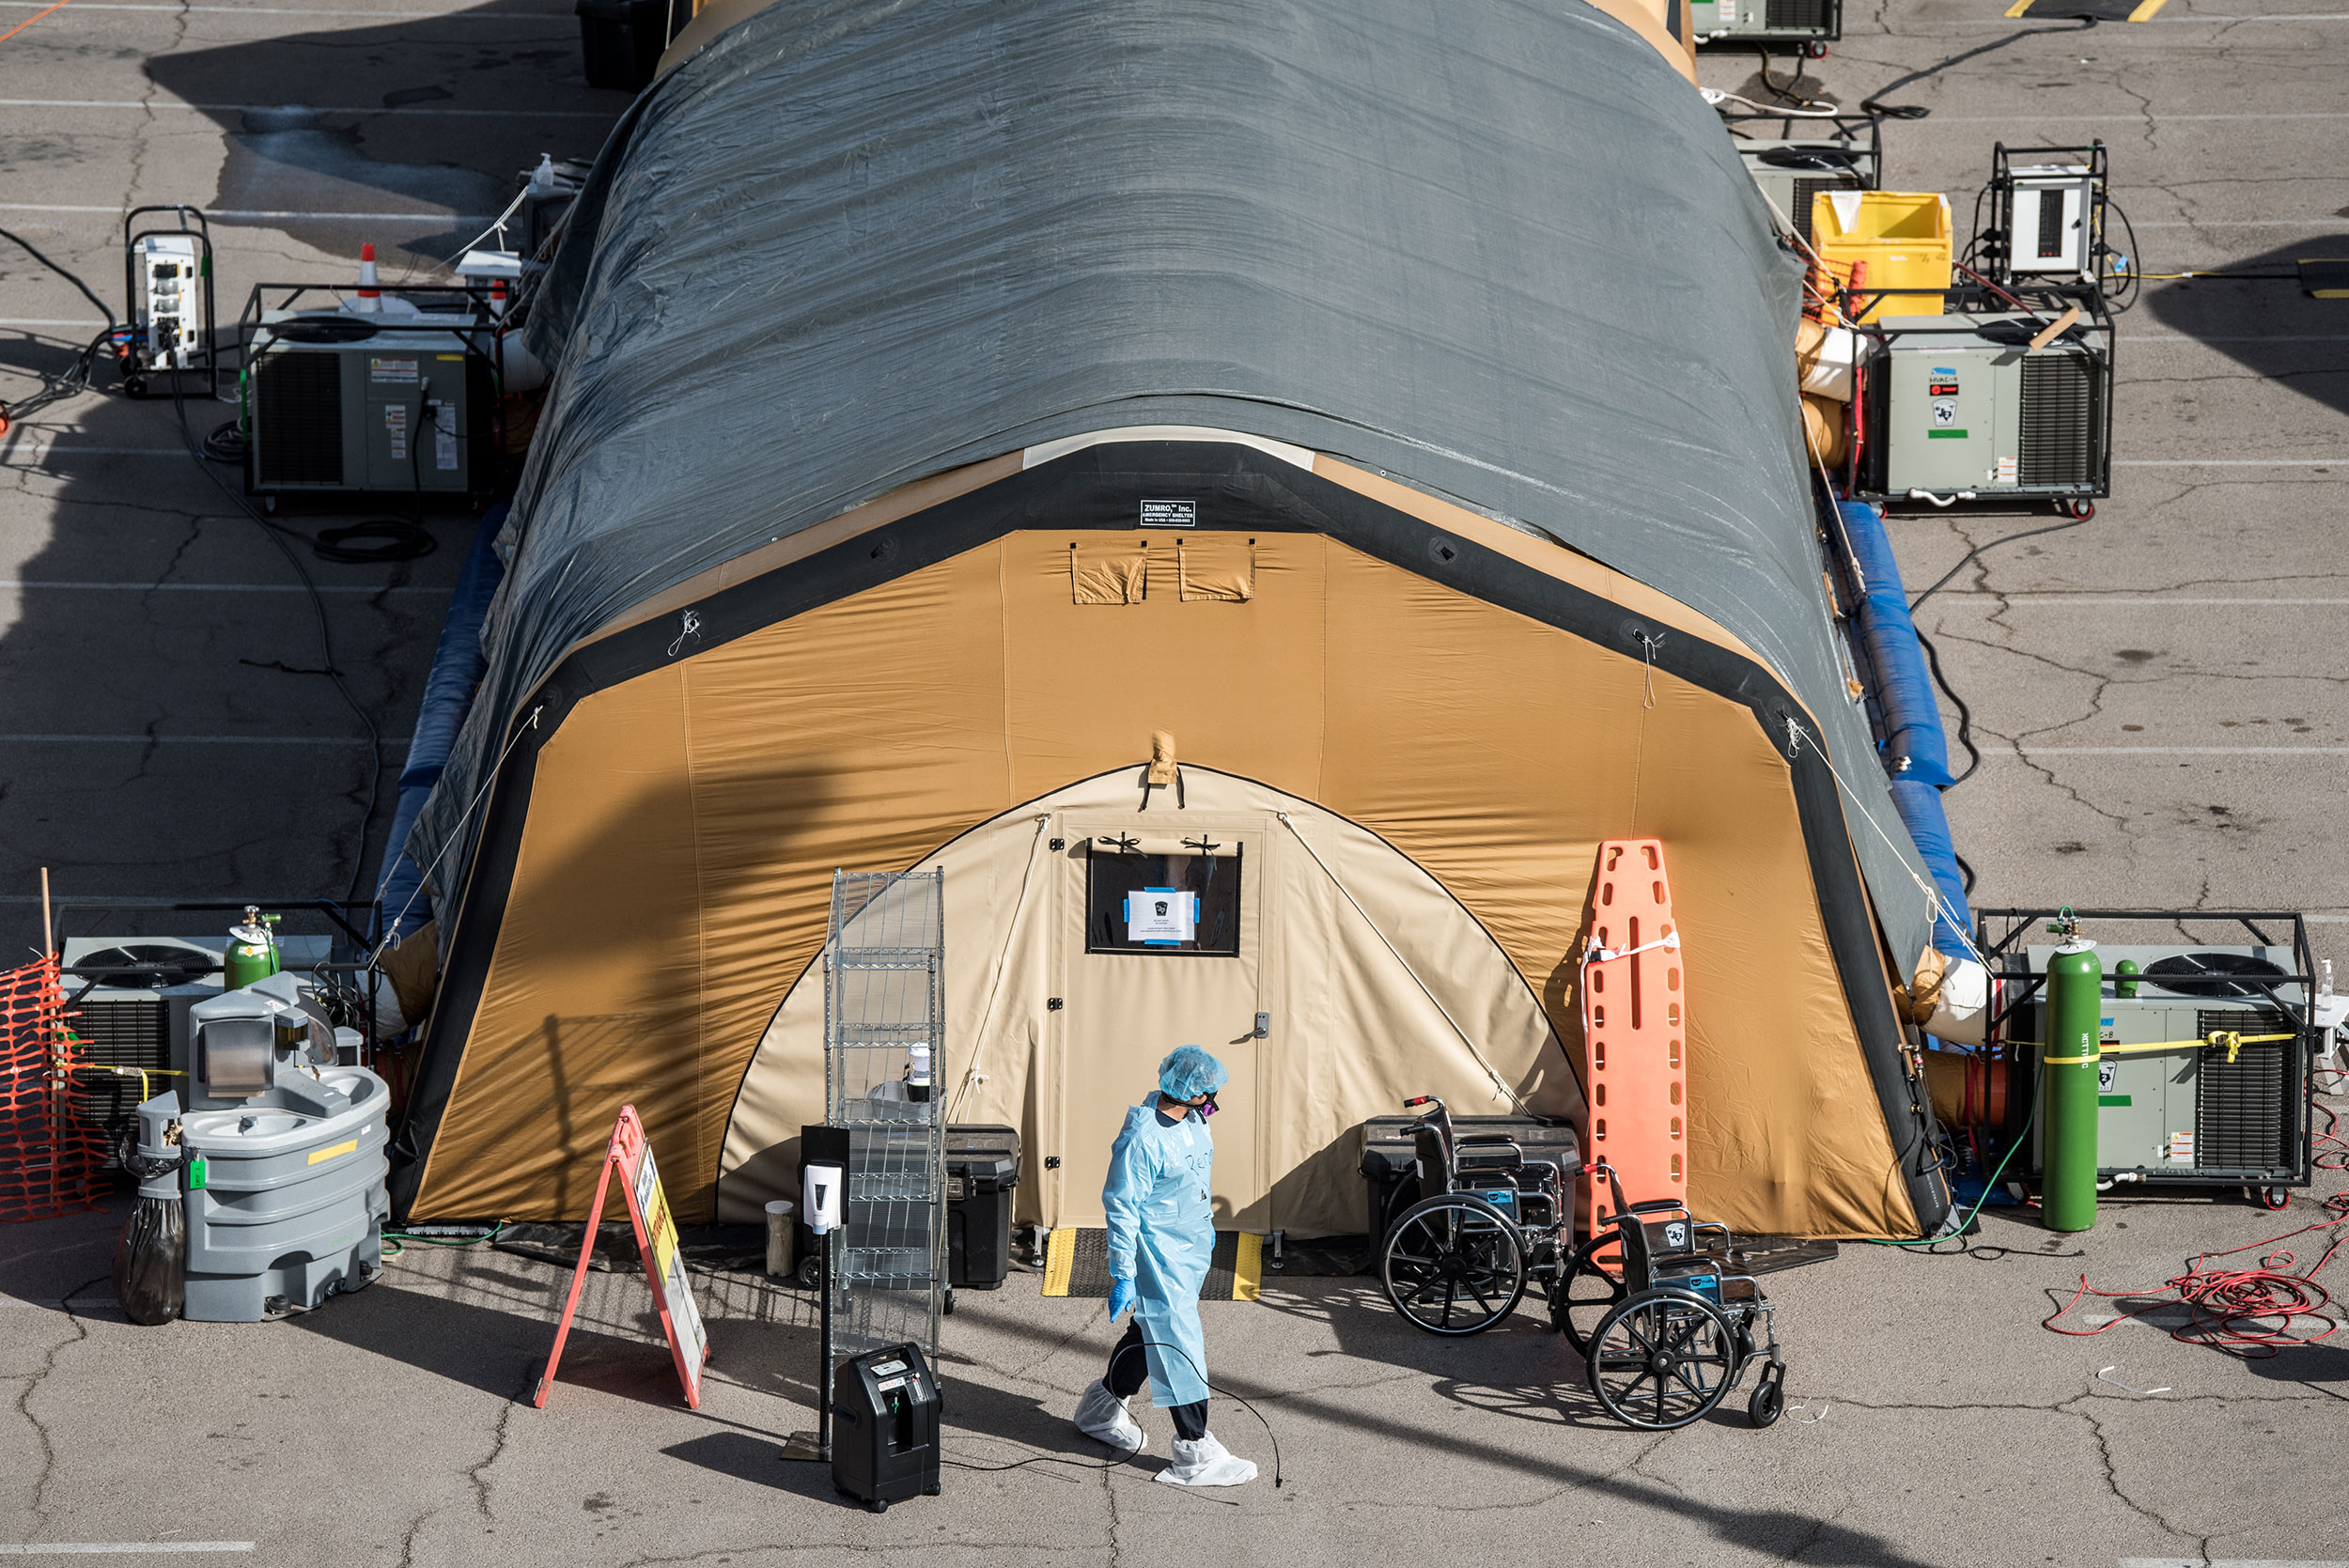 A nurse exits a tent for coronavirus patients at University Medical Center in El Paso, Texas, on October 30. Health care workers will be among the first to get the coronavirus vaccine.